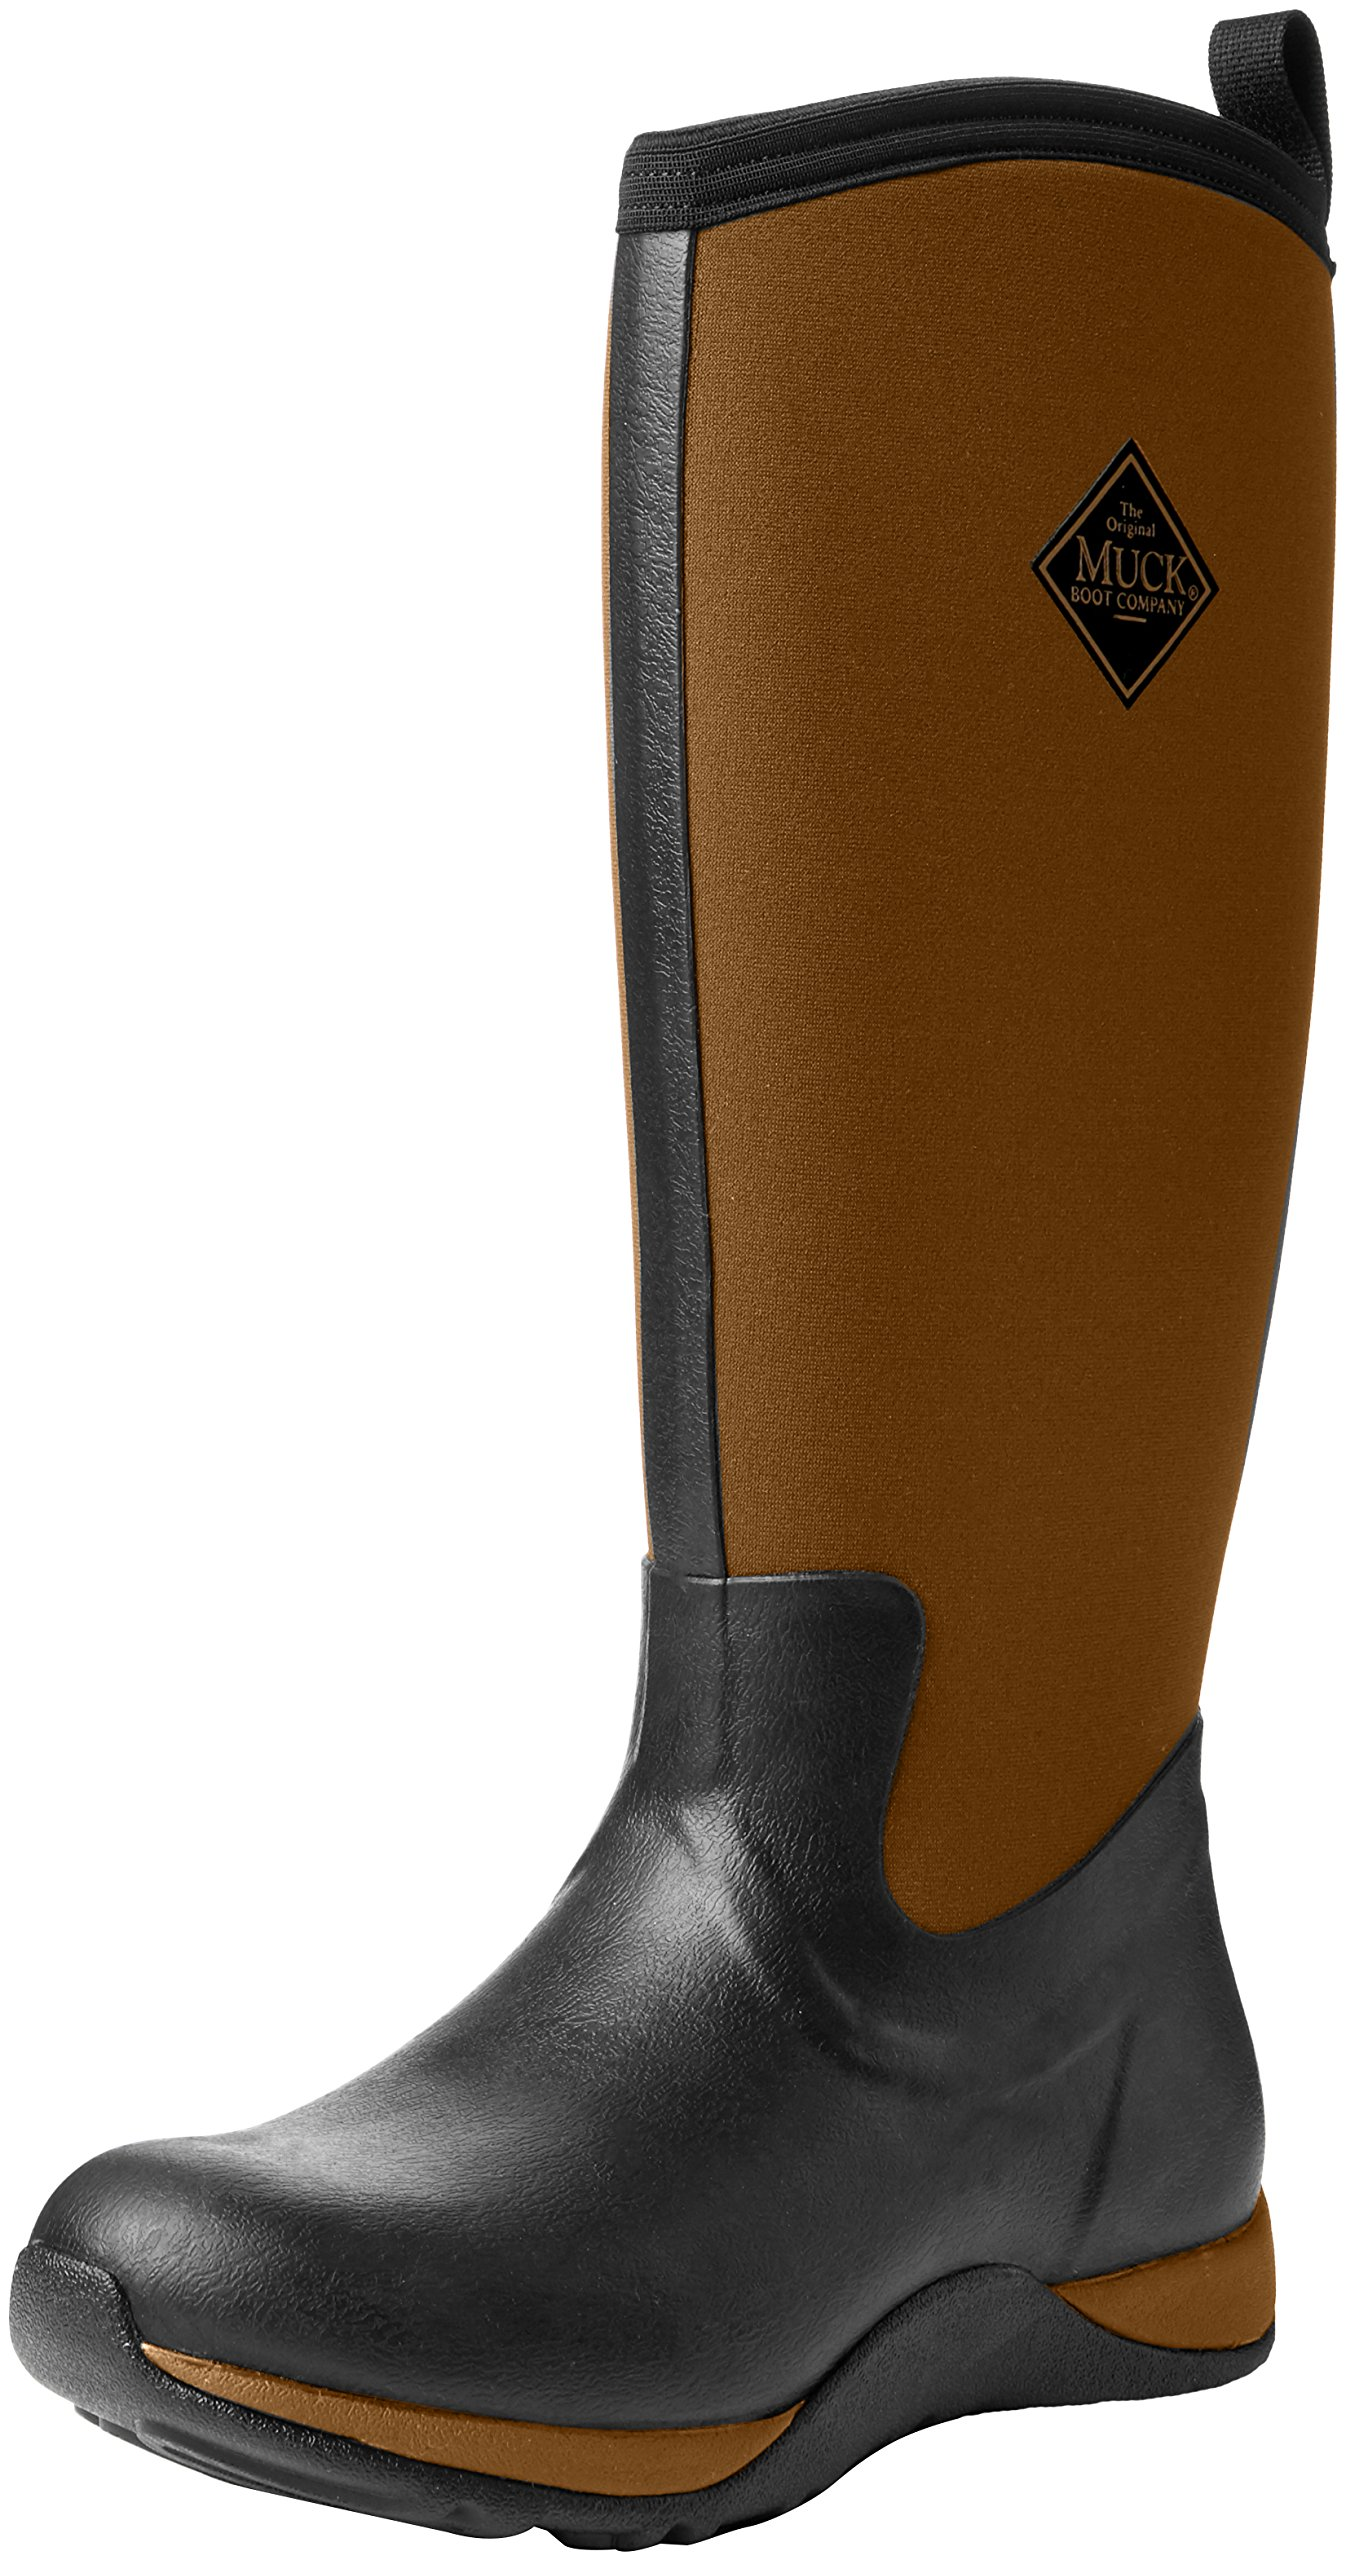 Muck Boot Women's Arctic Adventure Tall Snow Boot, Black/Tan, 9 US/9 M US by Muck Boot